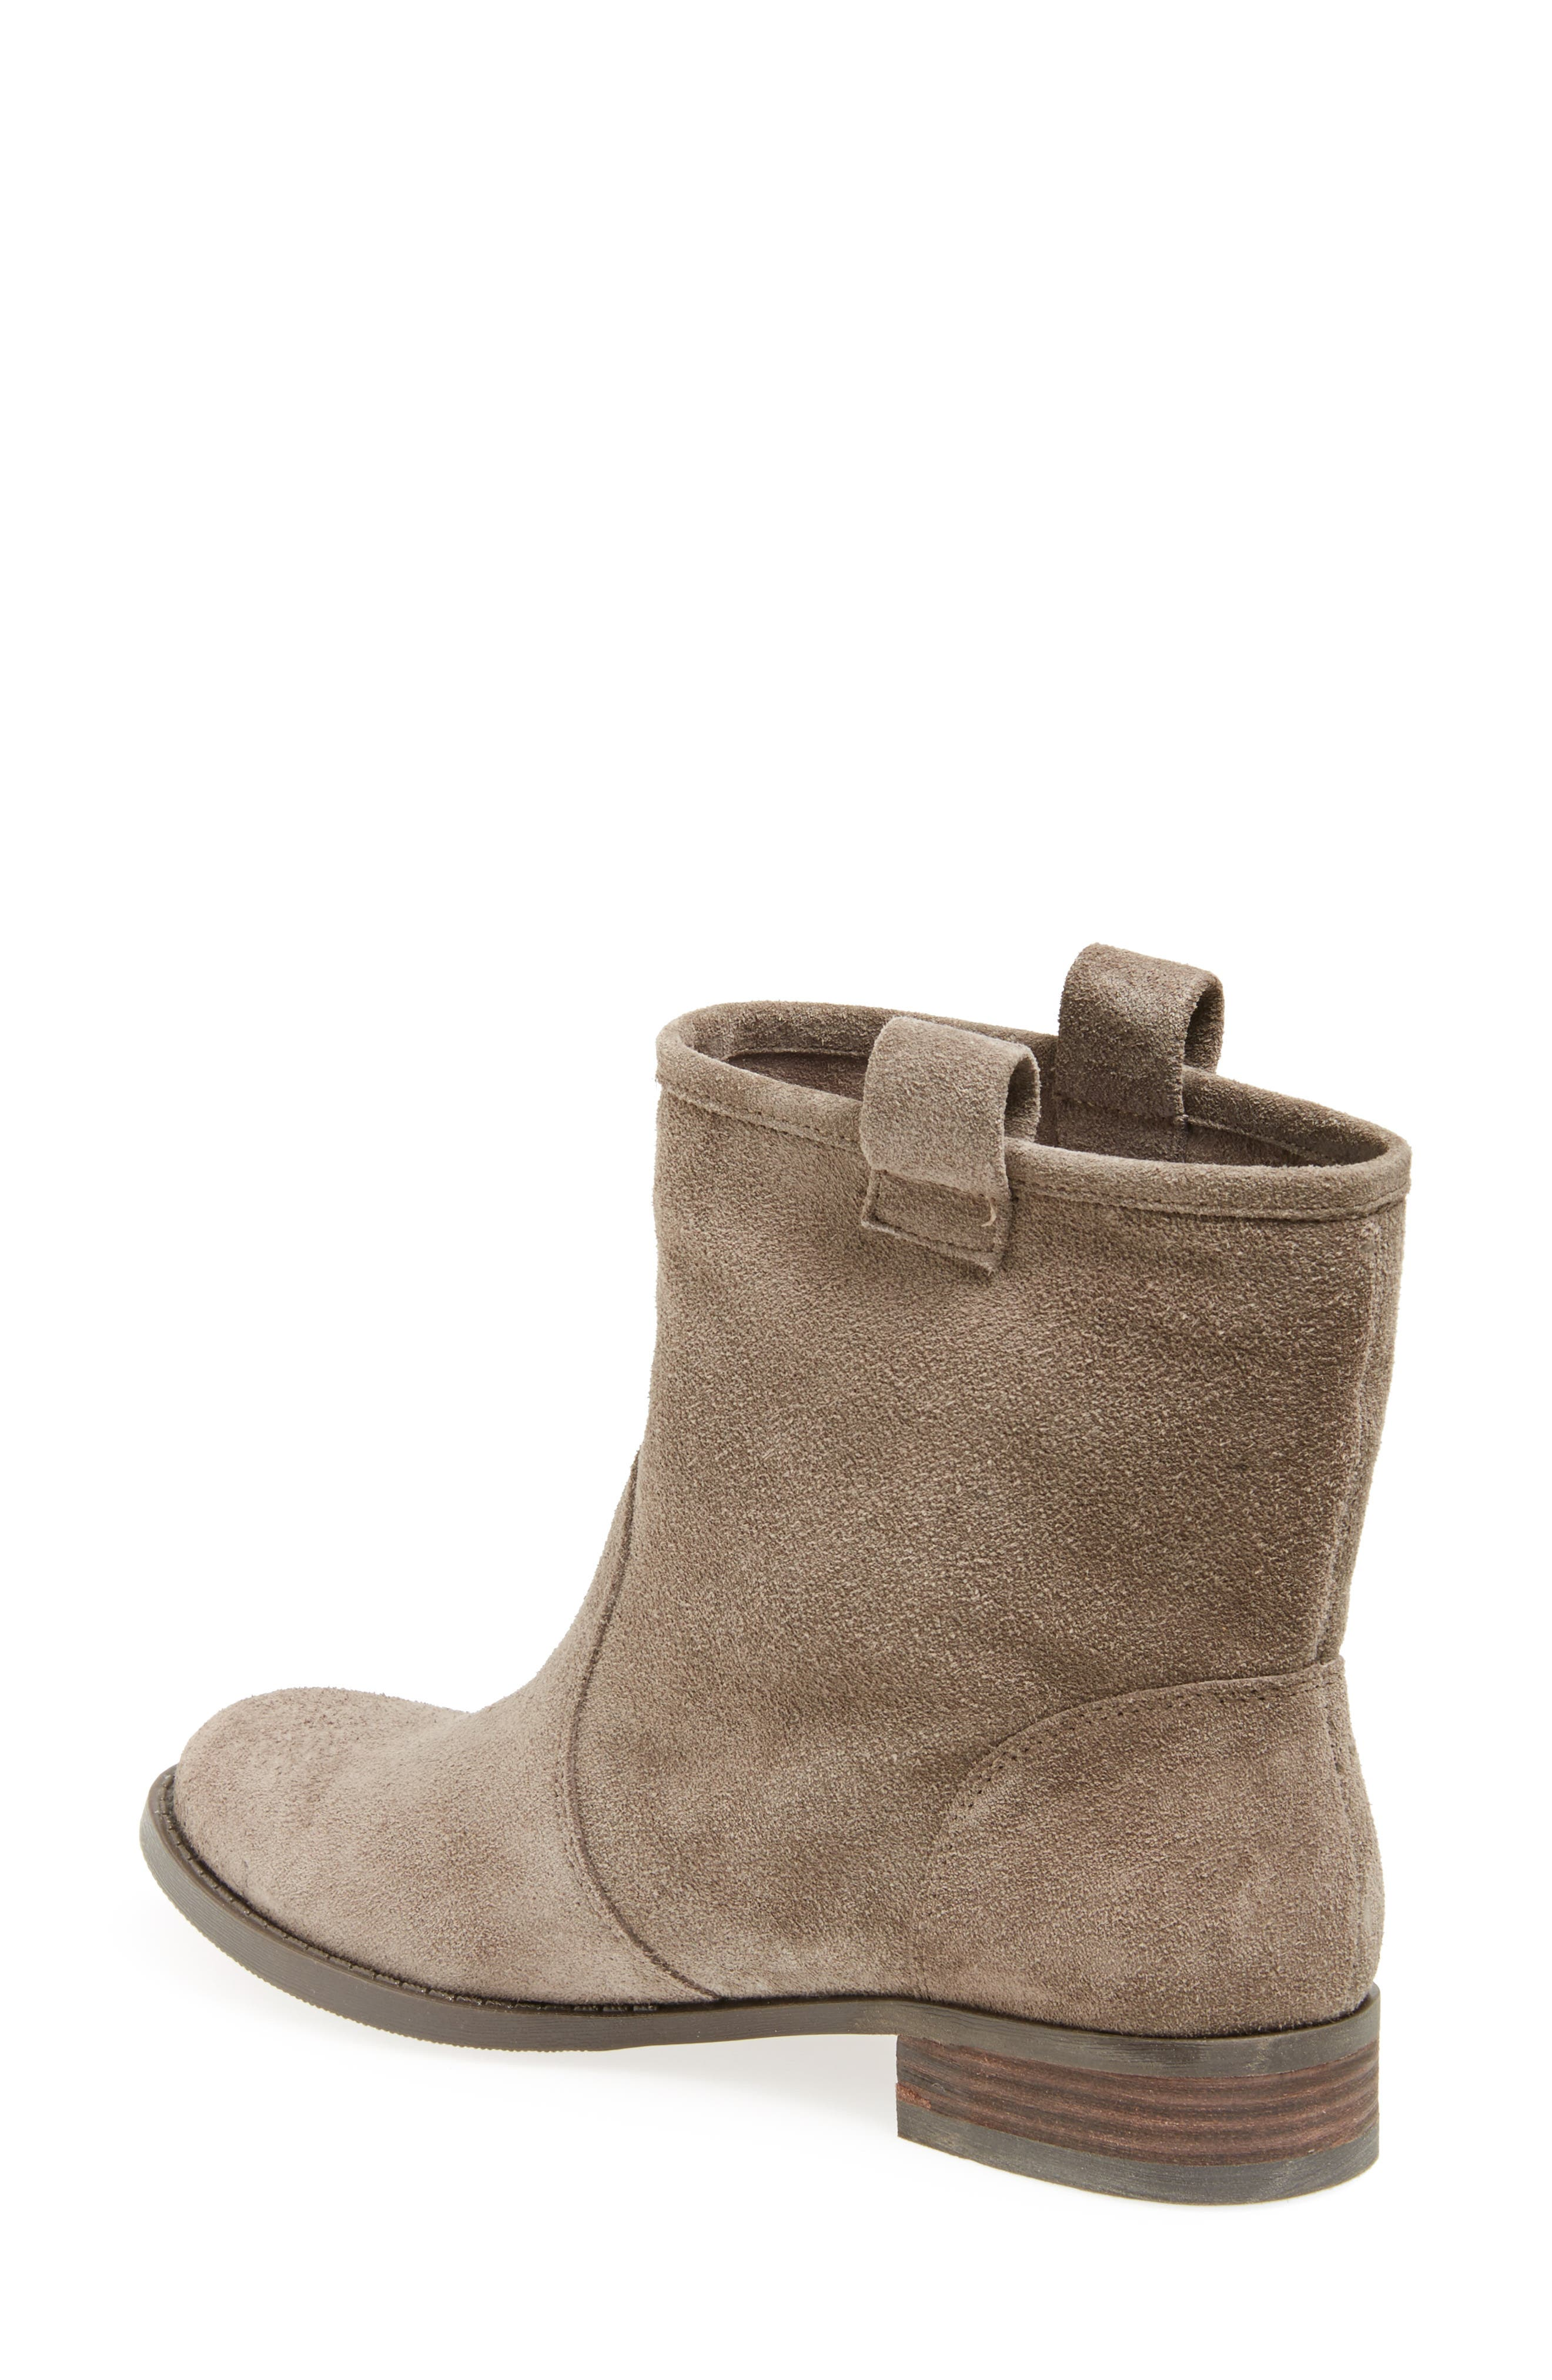 SOLE SOCIETY 'Natasha' Boot, Main, color, 021